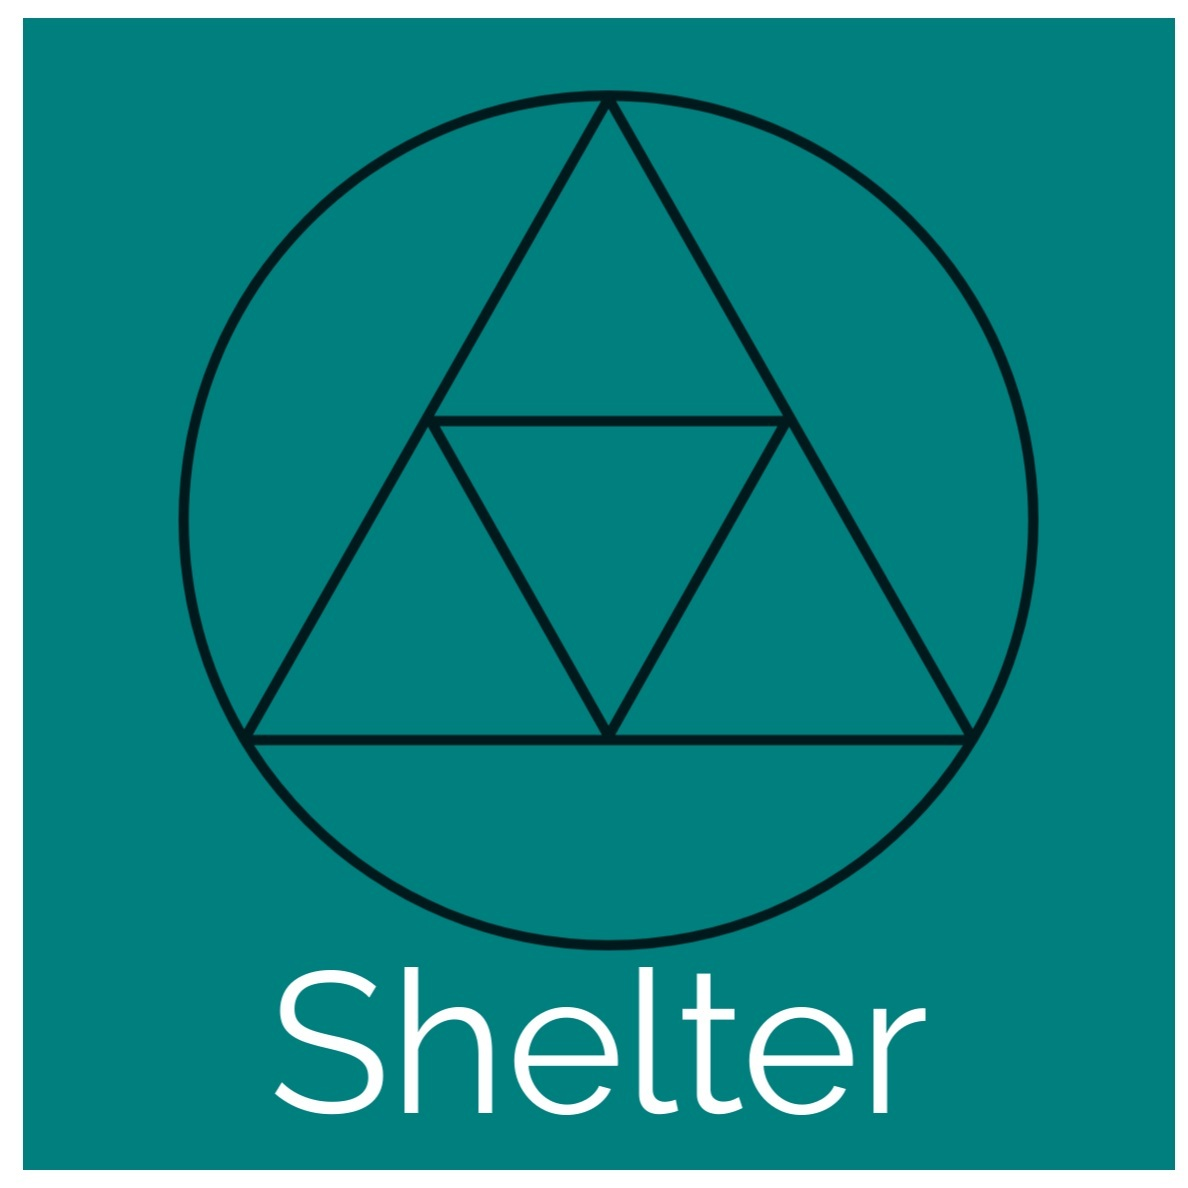 Shelter%2BBlock.jpg